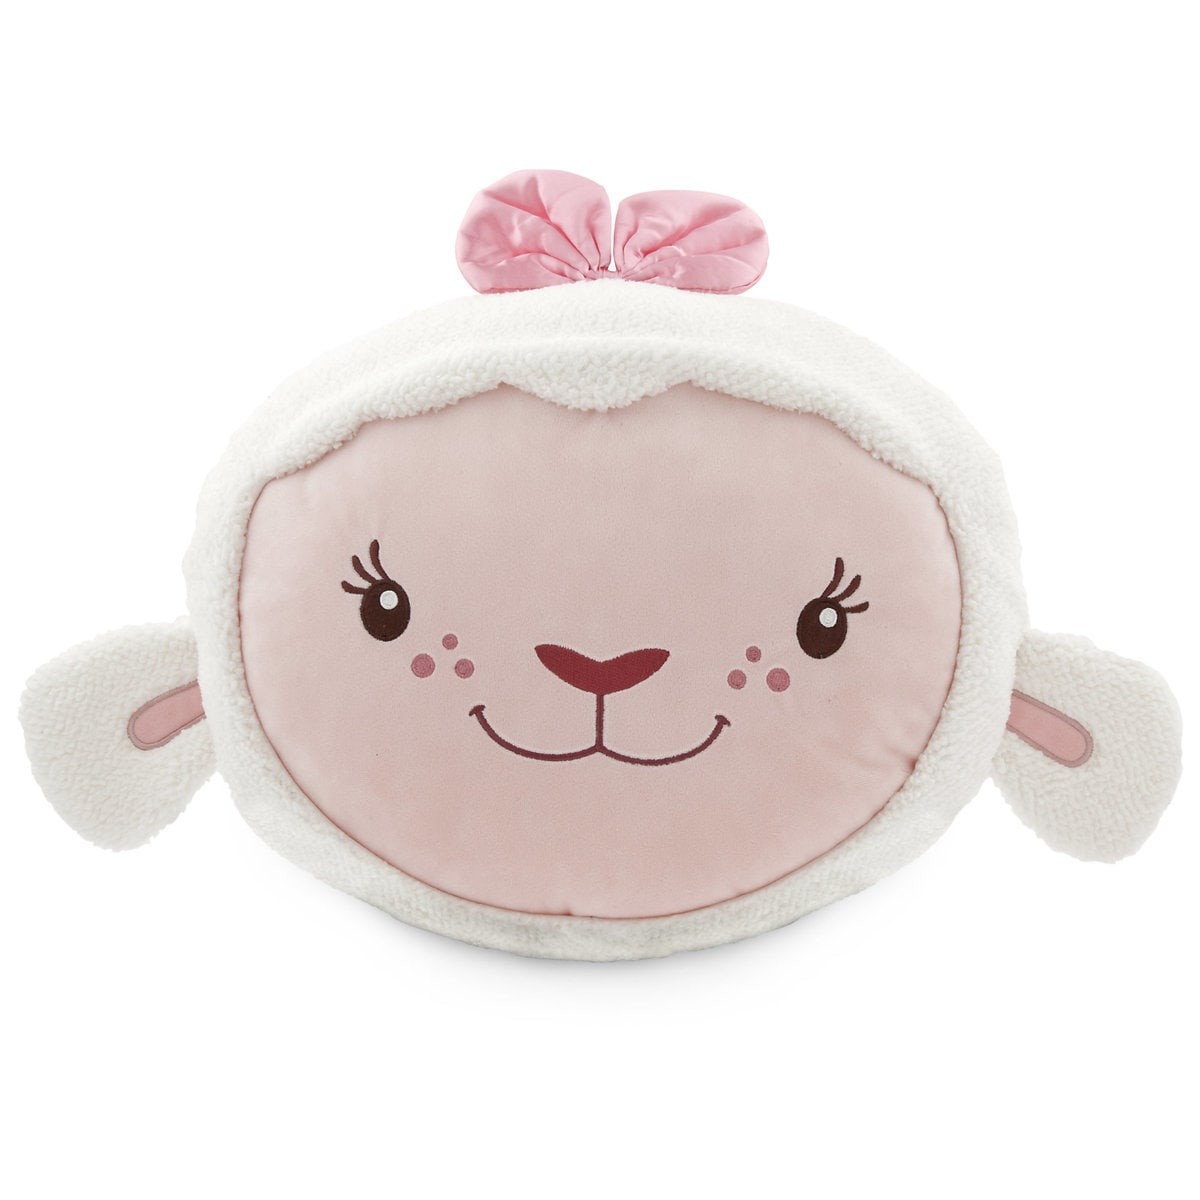 db1b1d67f850 Lambie Plush Pillow - Doc McStuffins - 22''